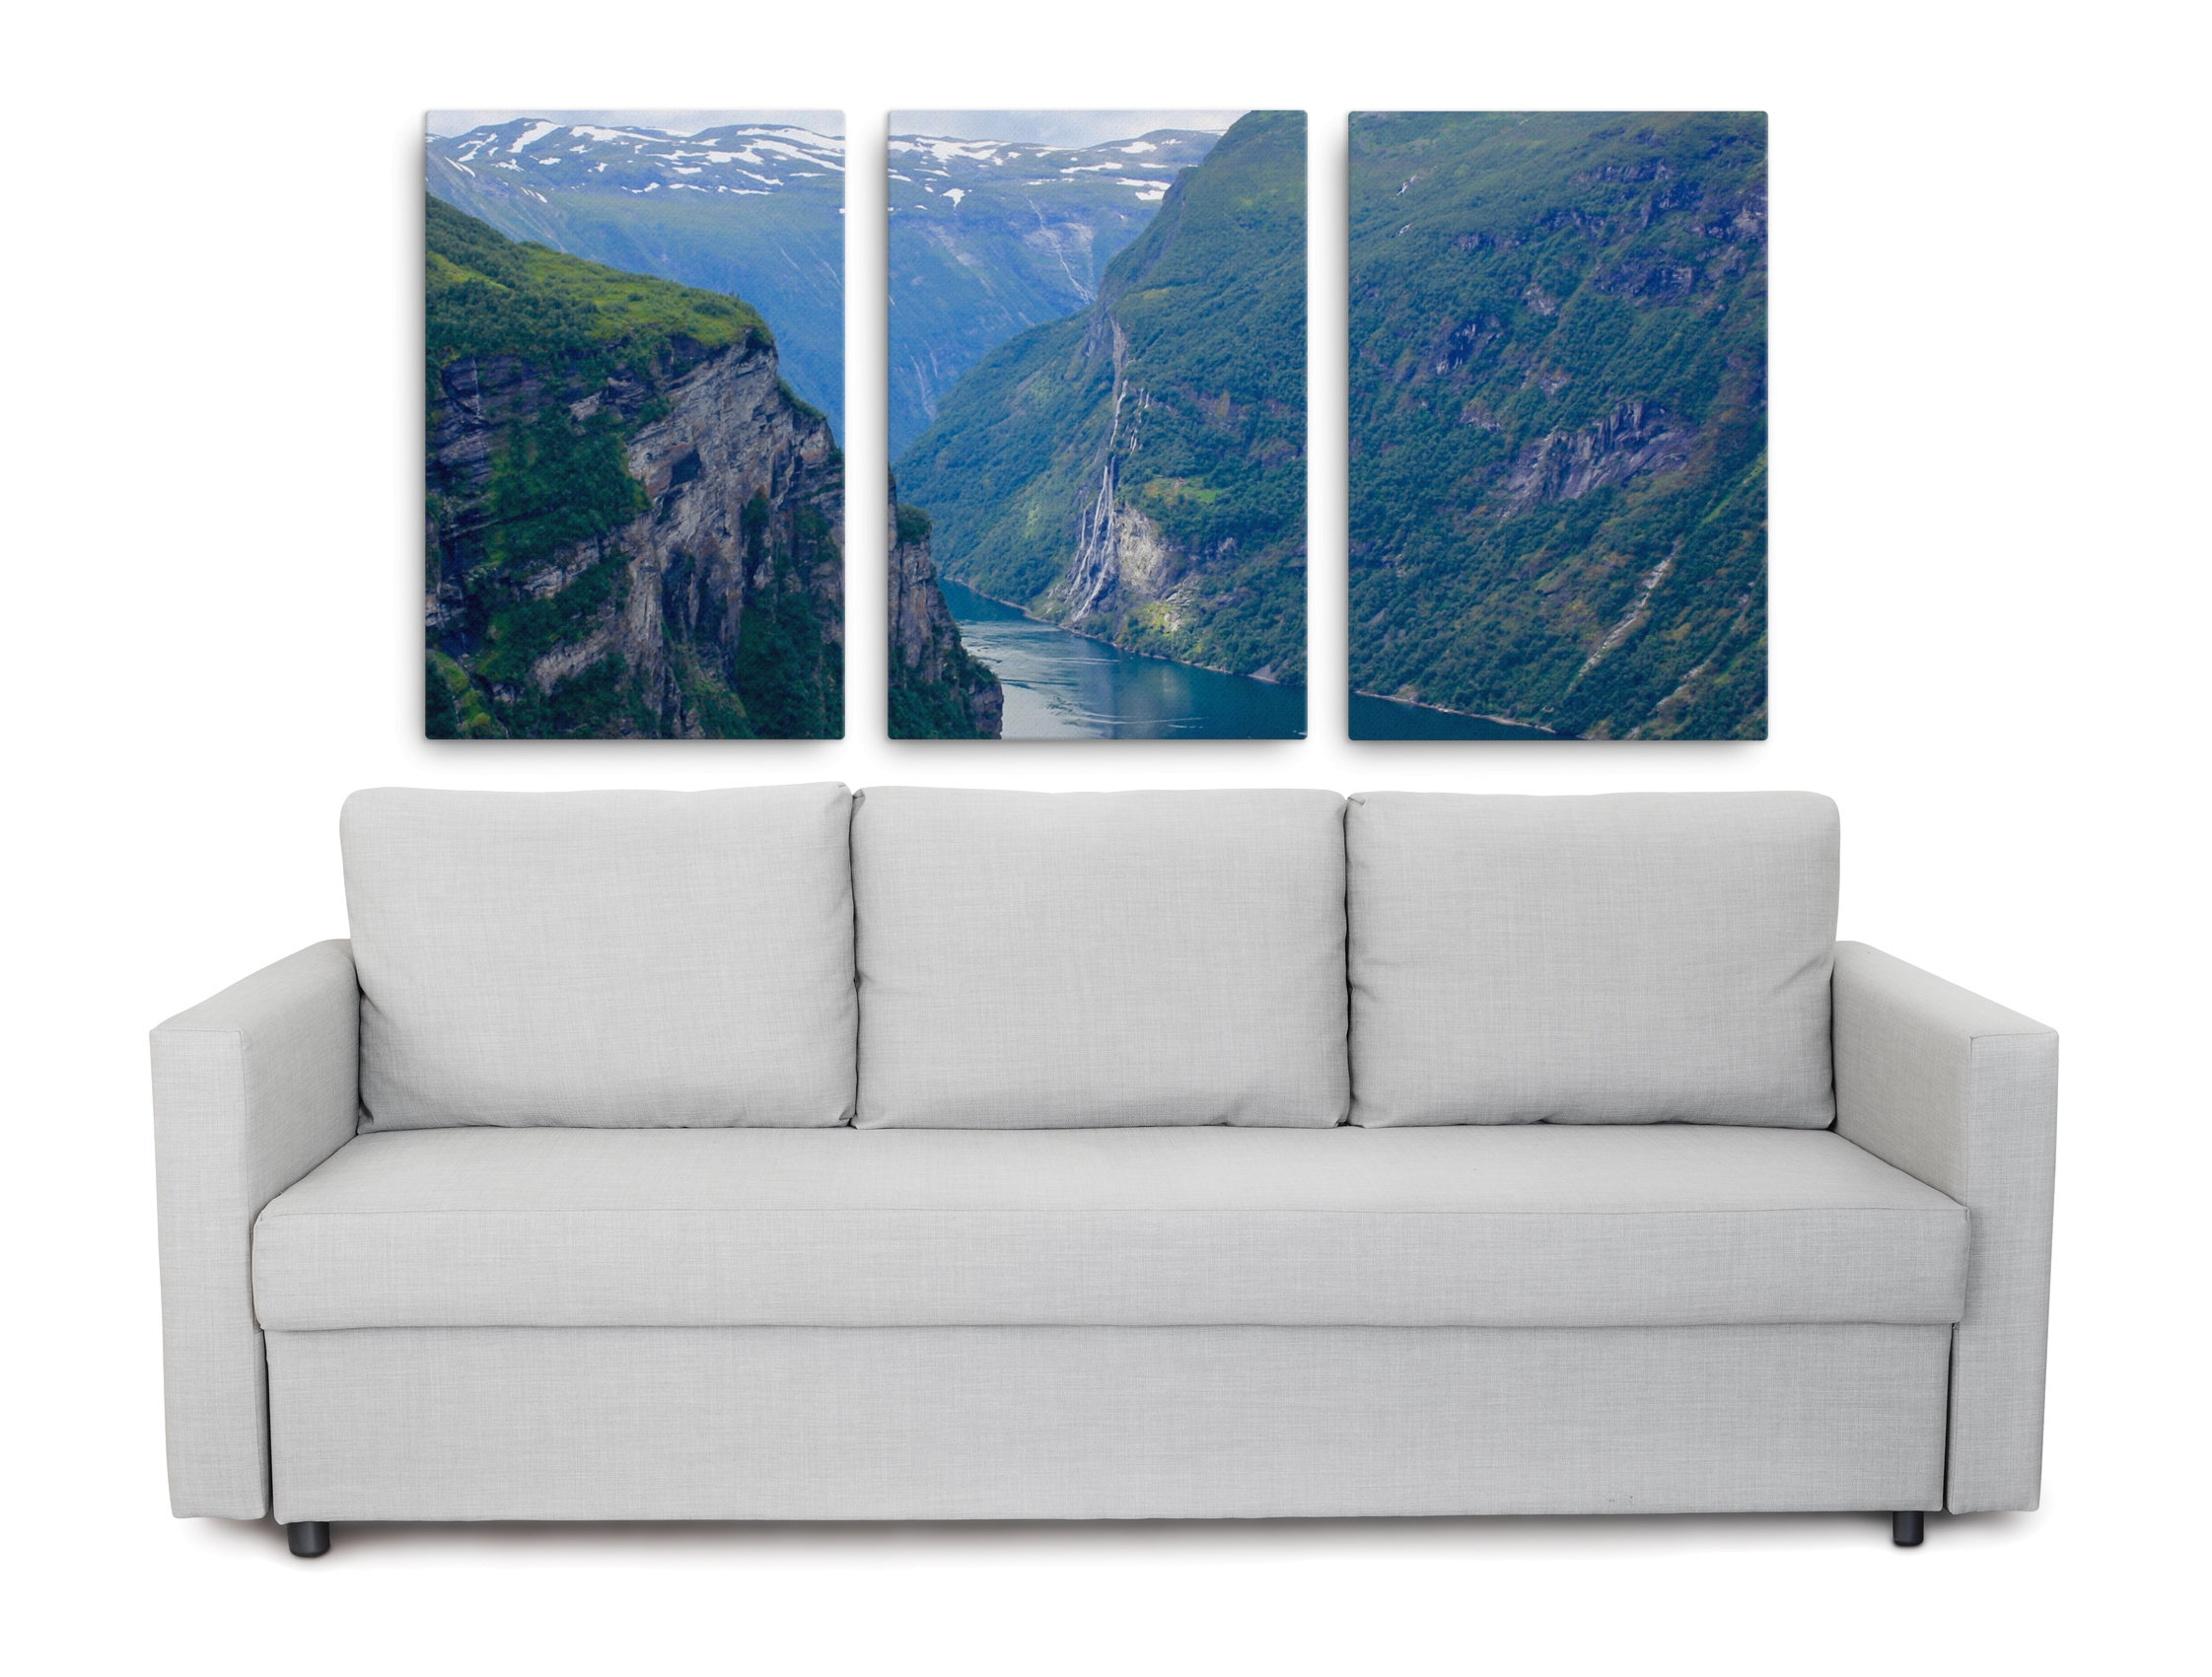 Norwegian Fjord pictures - Triptych picturing the Seven Sisters waterfall, Norway